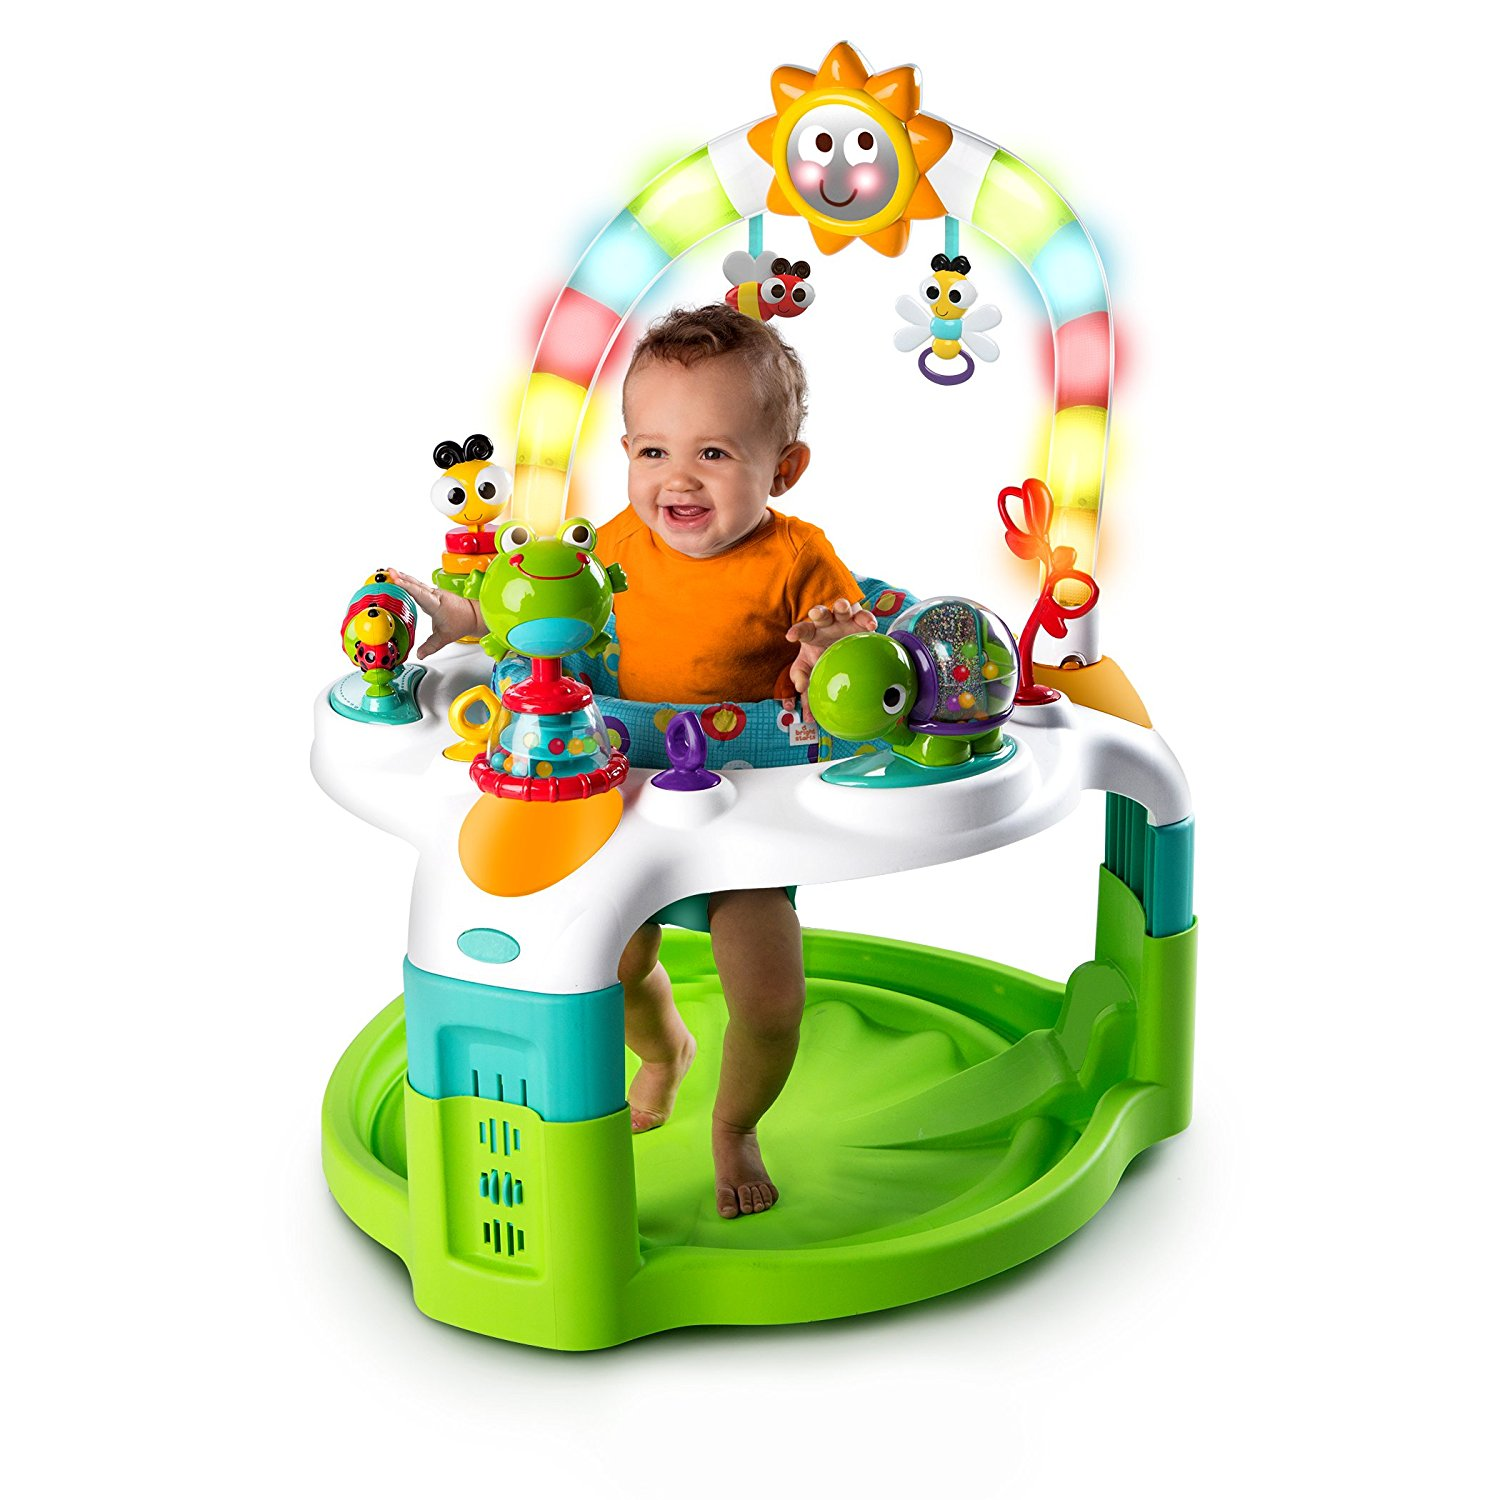 New Bright Starts 2 In 1 Lights N Learn Activity Gym And Saucer